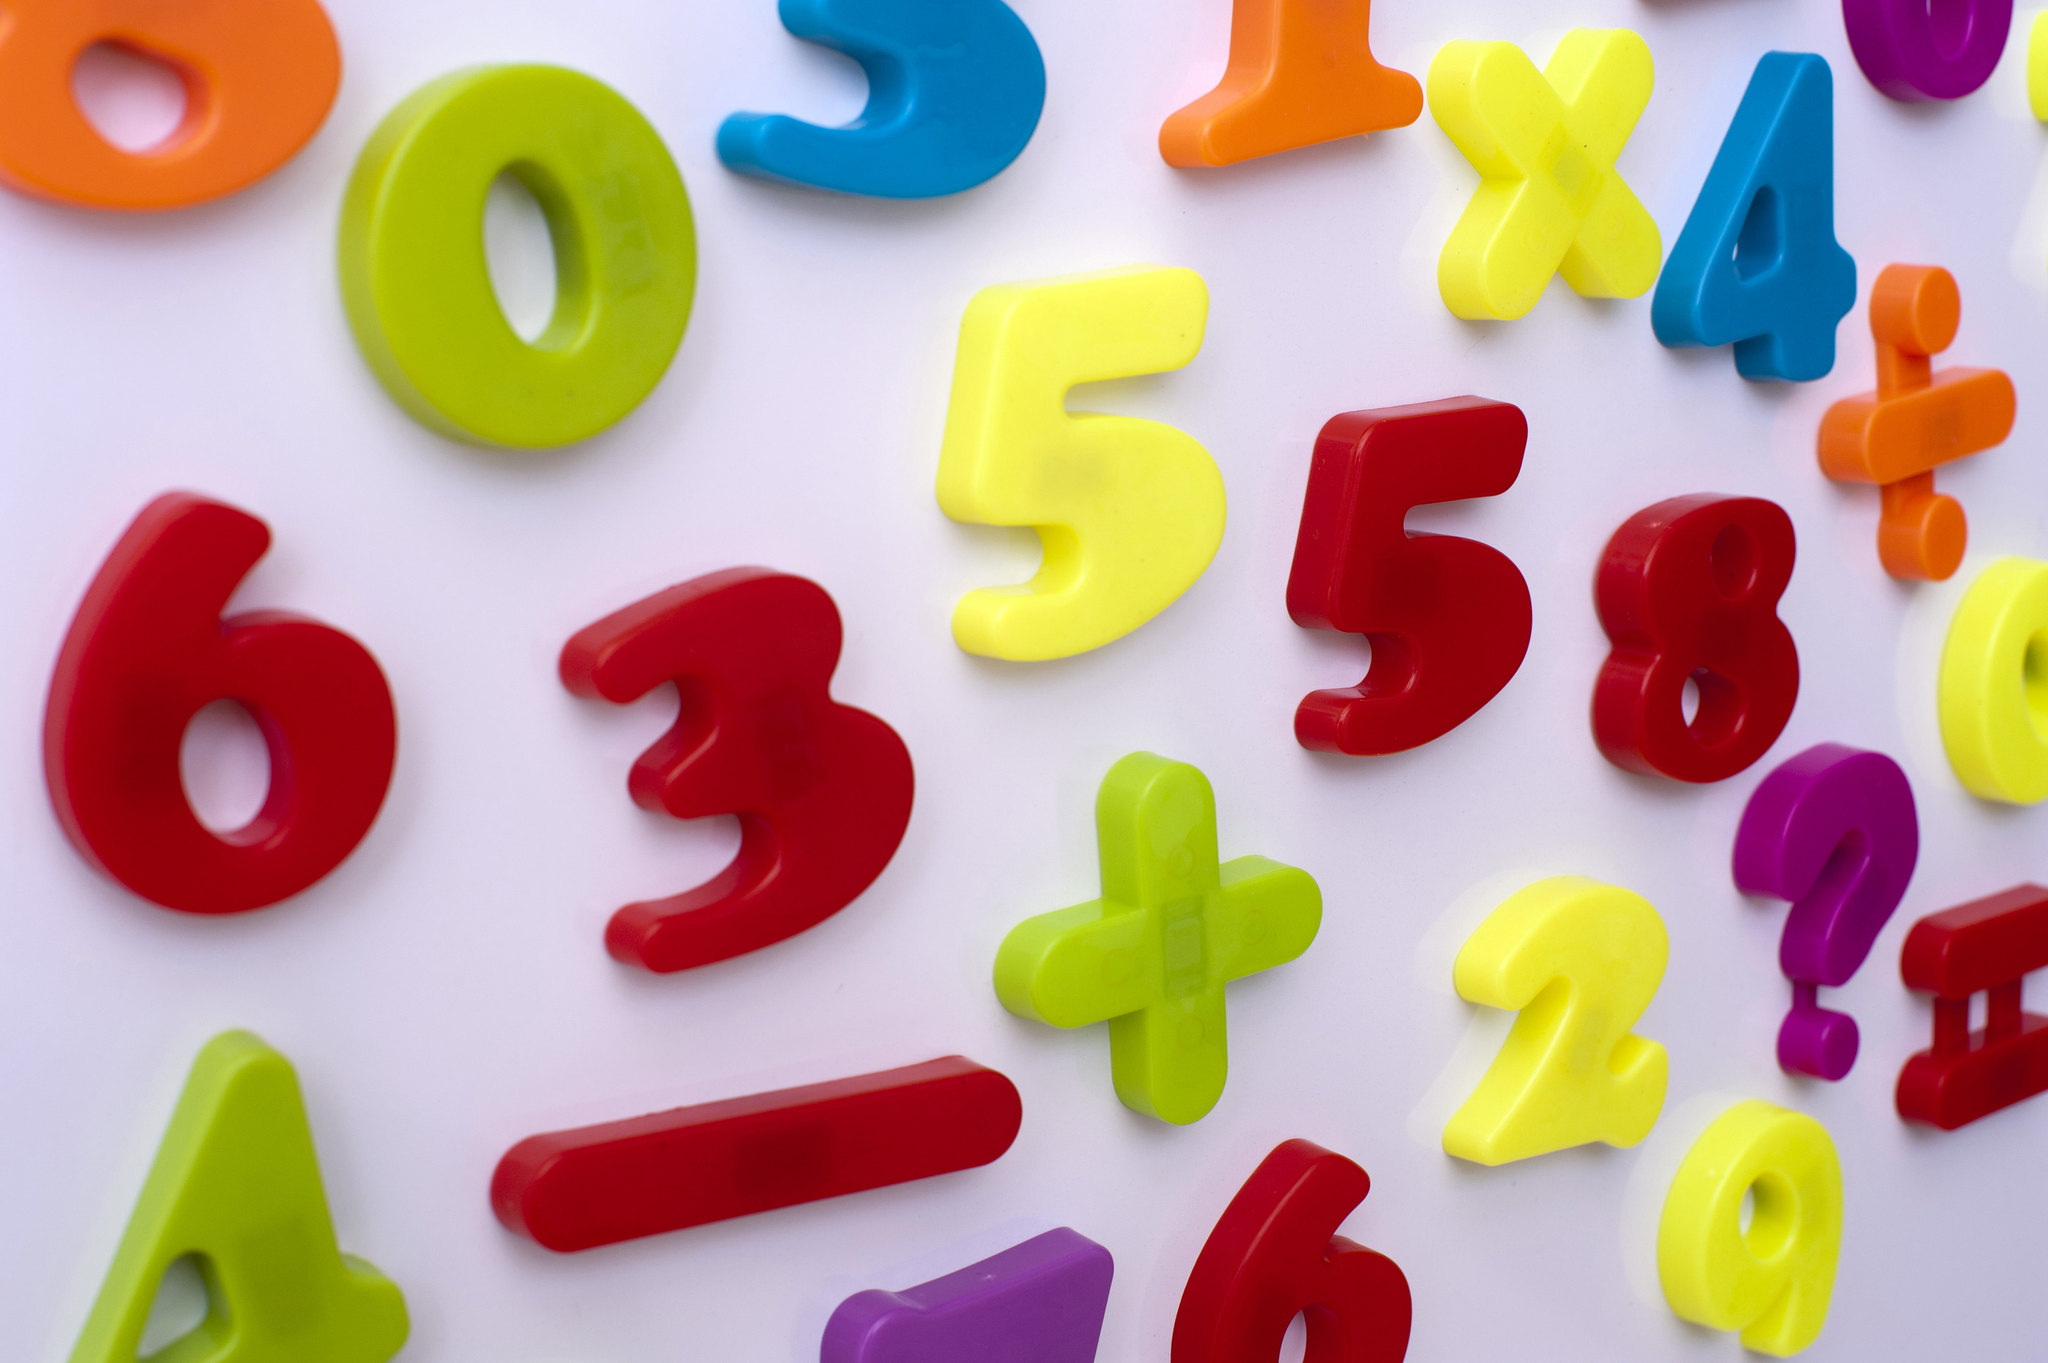 School Toy Education Background Plastic Numbers Learning